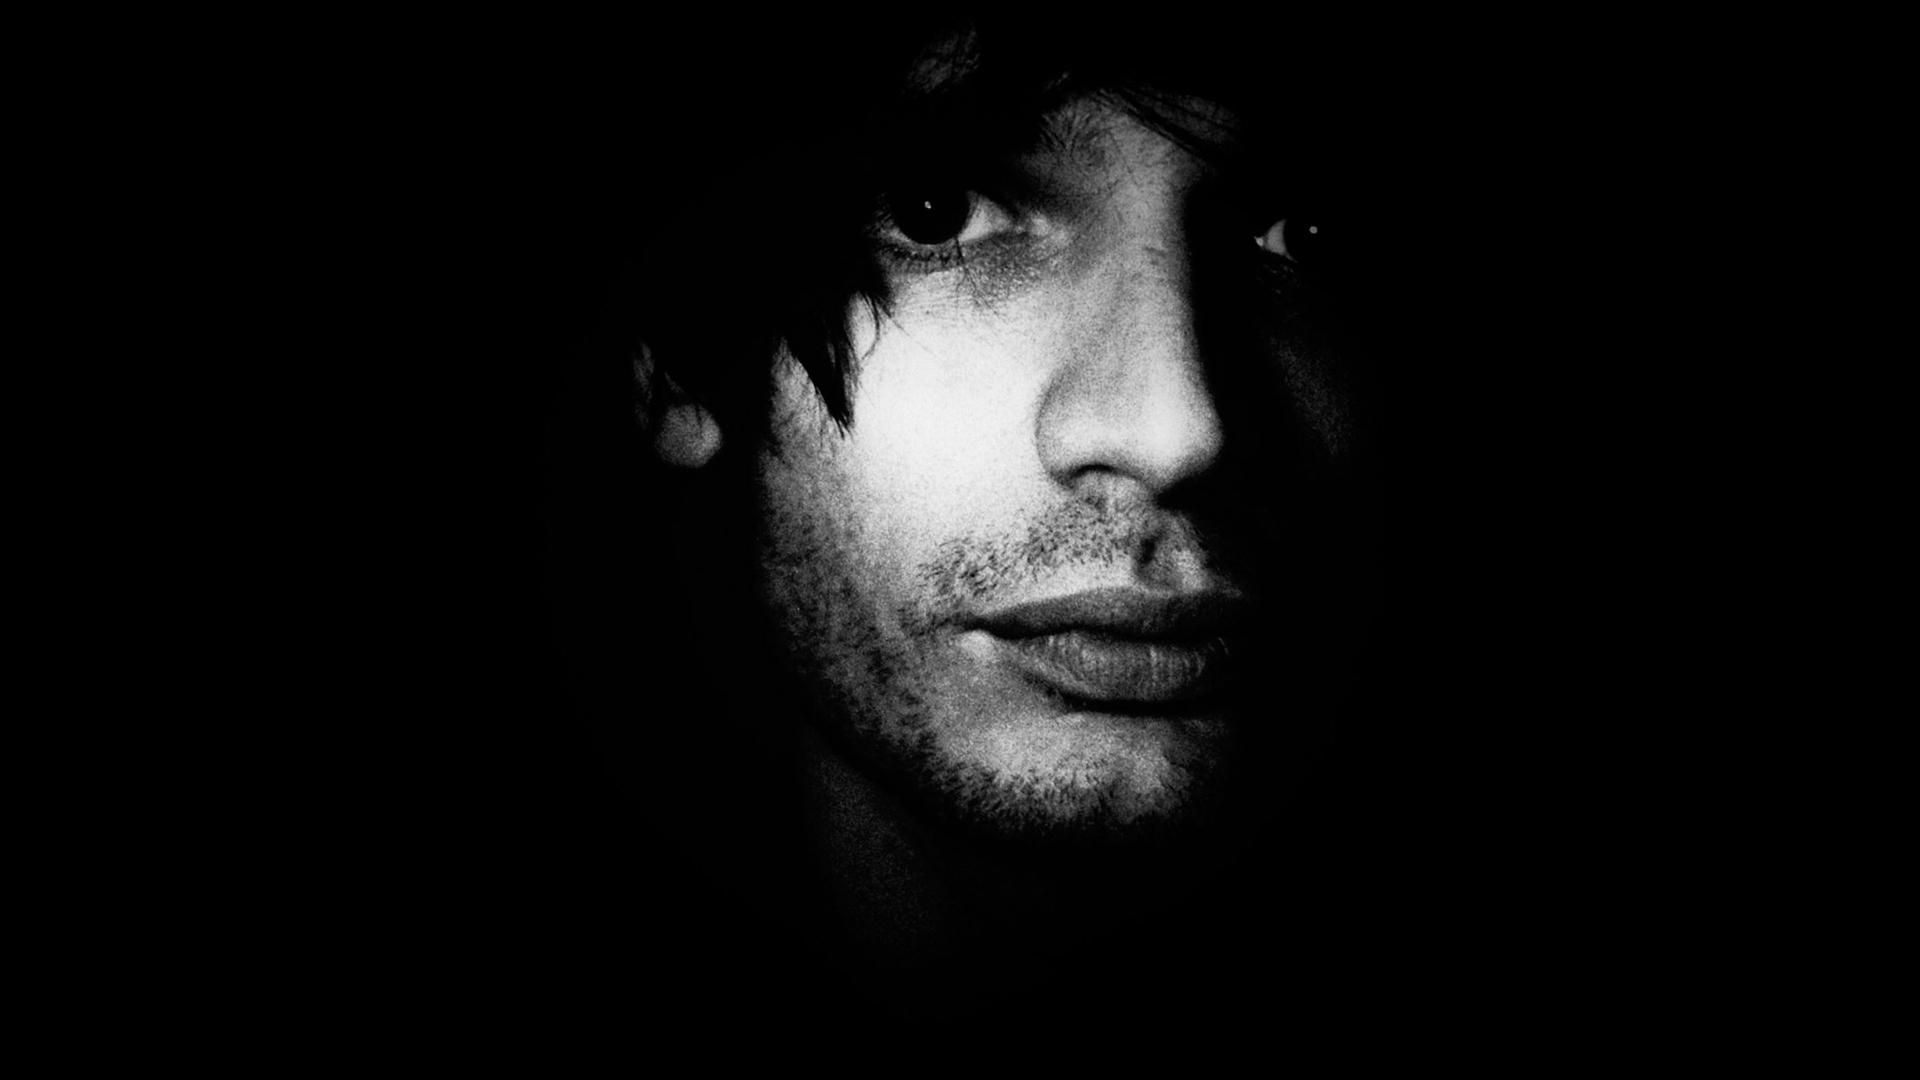 Jonny Greenwood Full HD Fondo De Pantalla And Fondo De